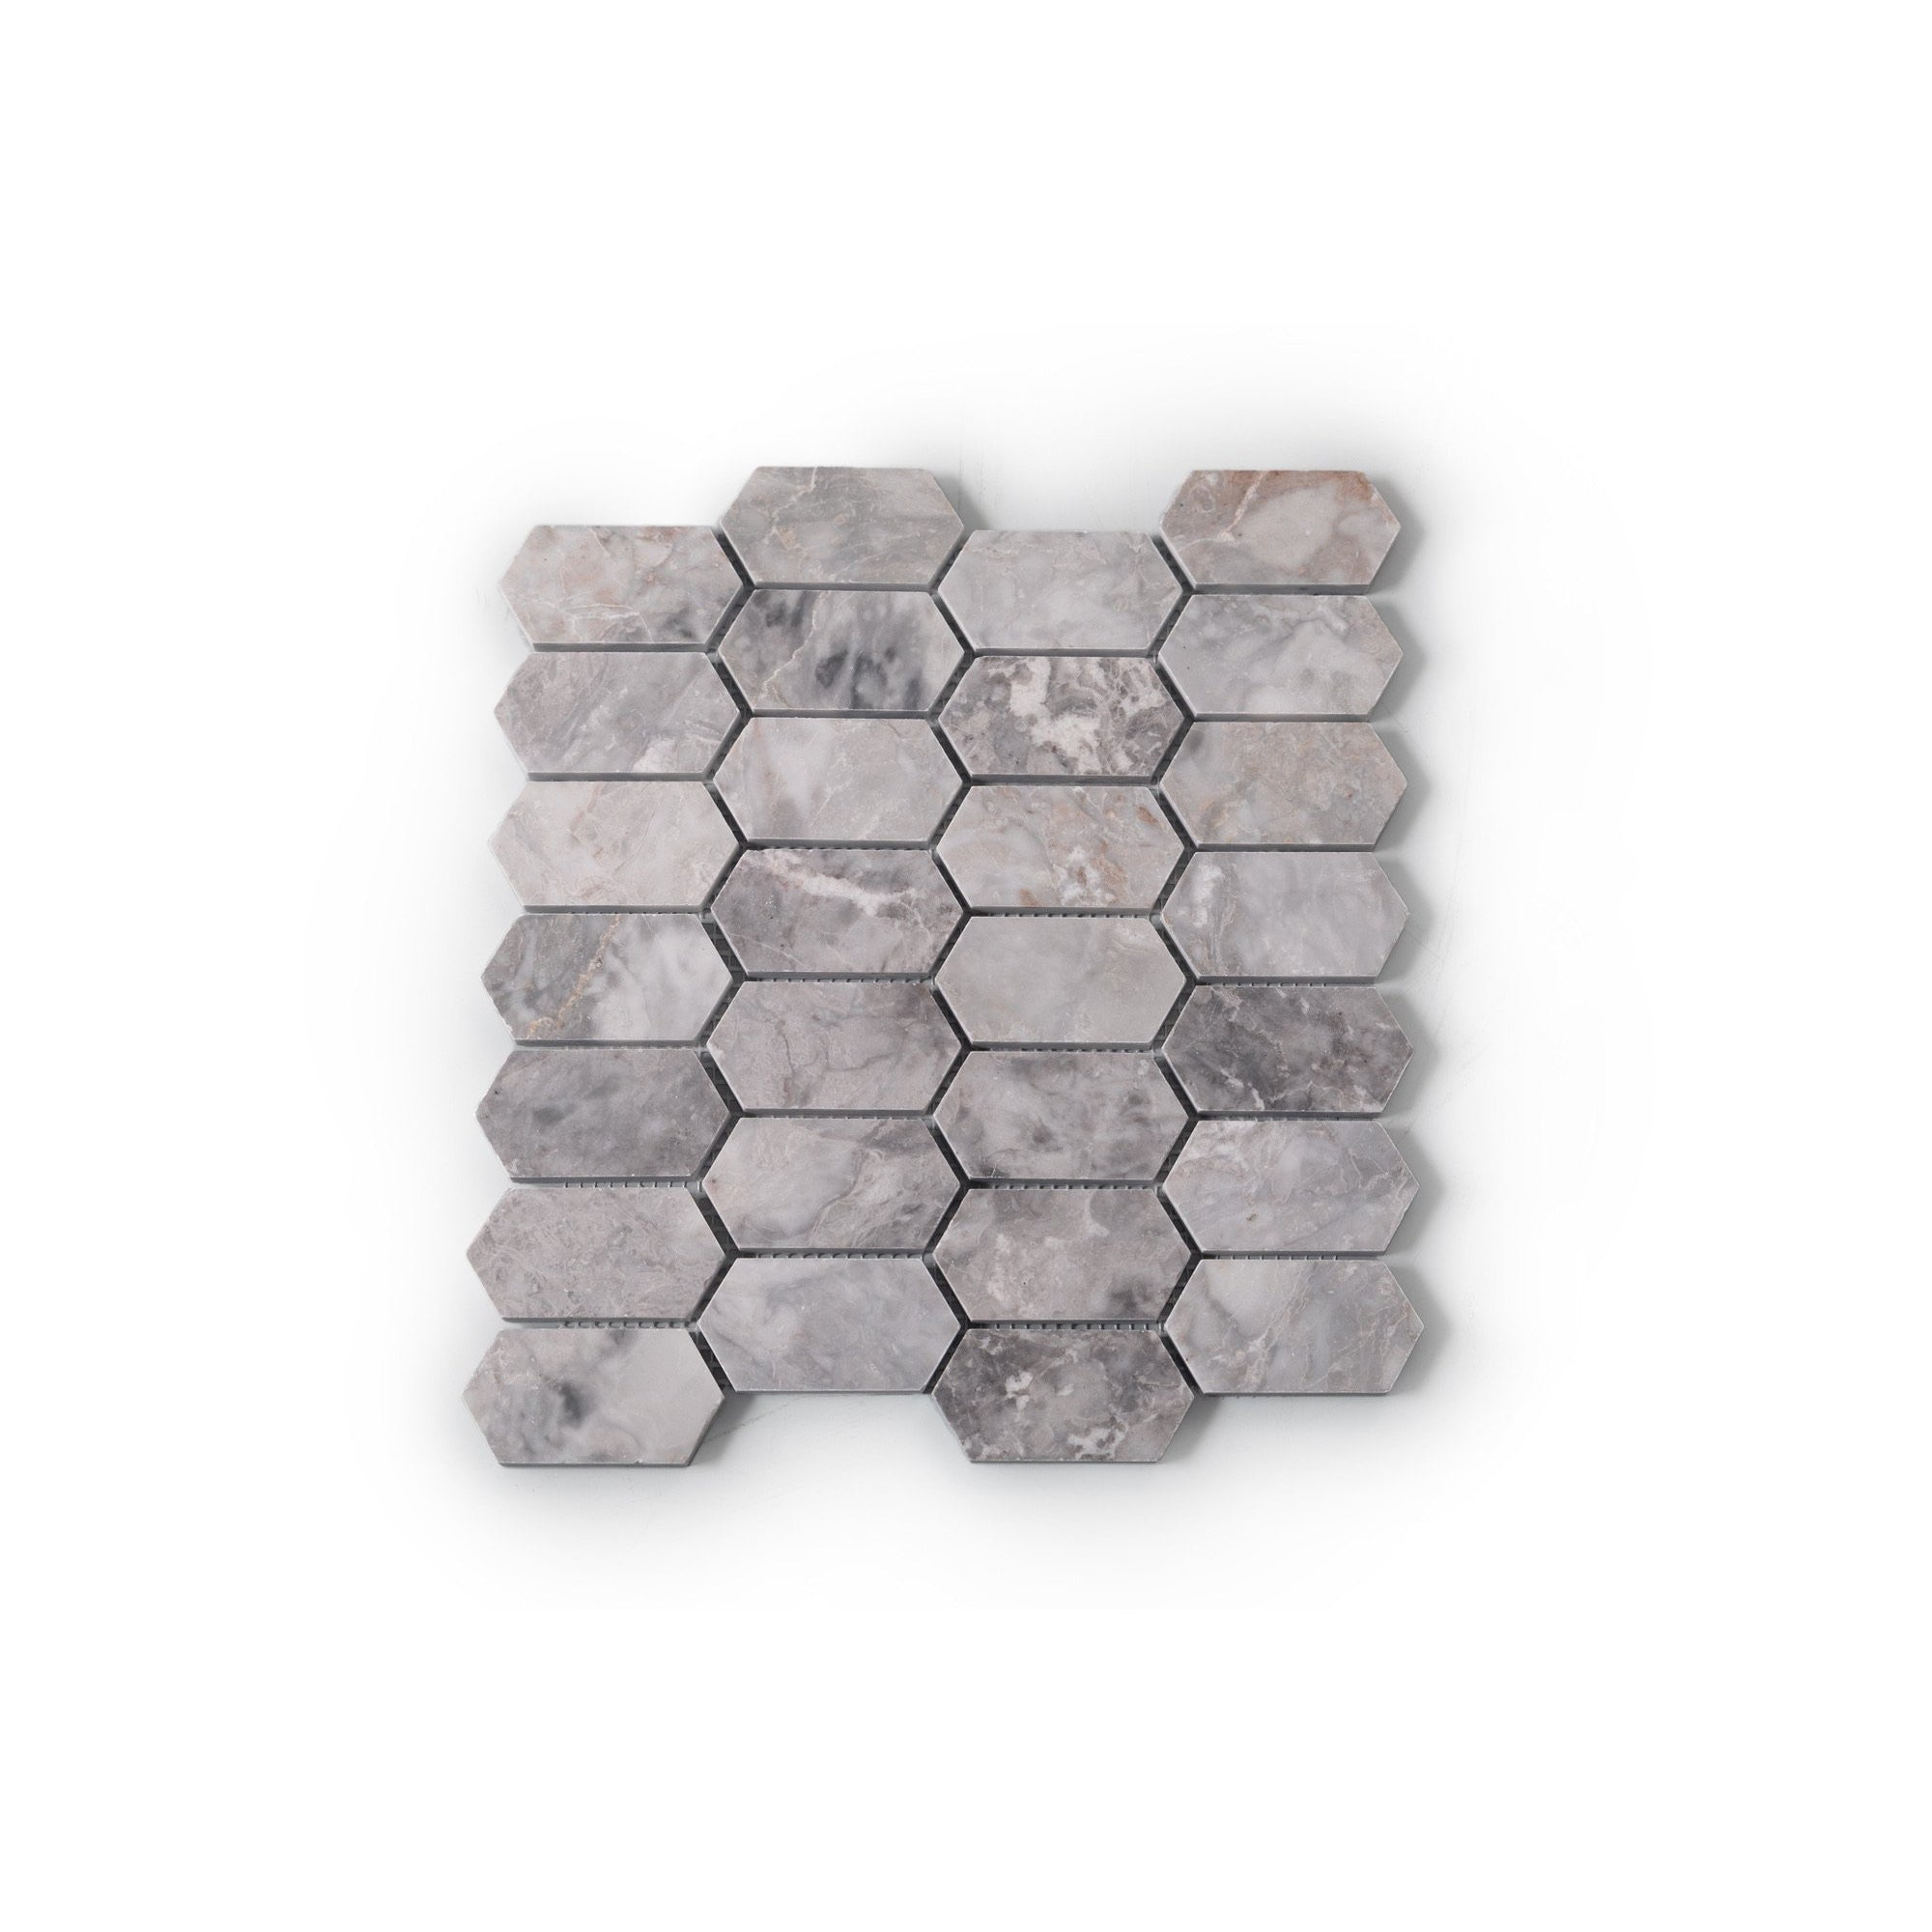 Natural Stone Mosaic Tiles - Grey Marble Picket (285x270mm)